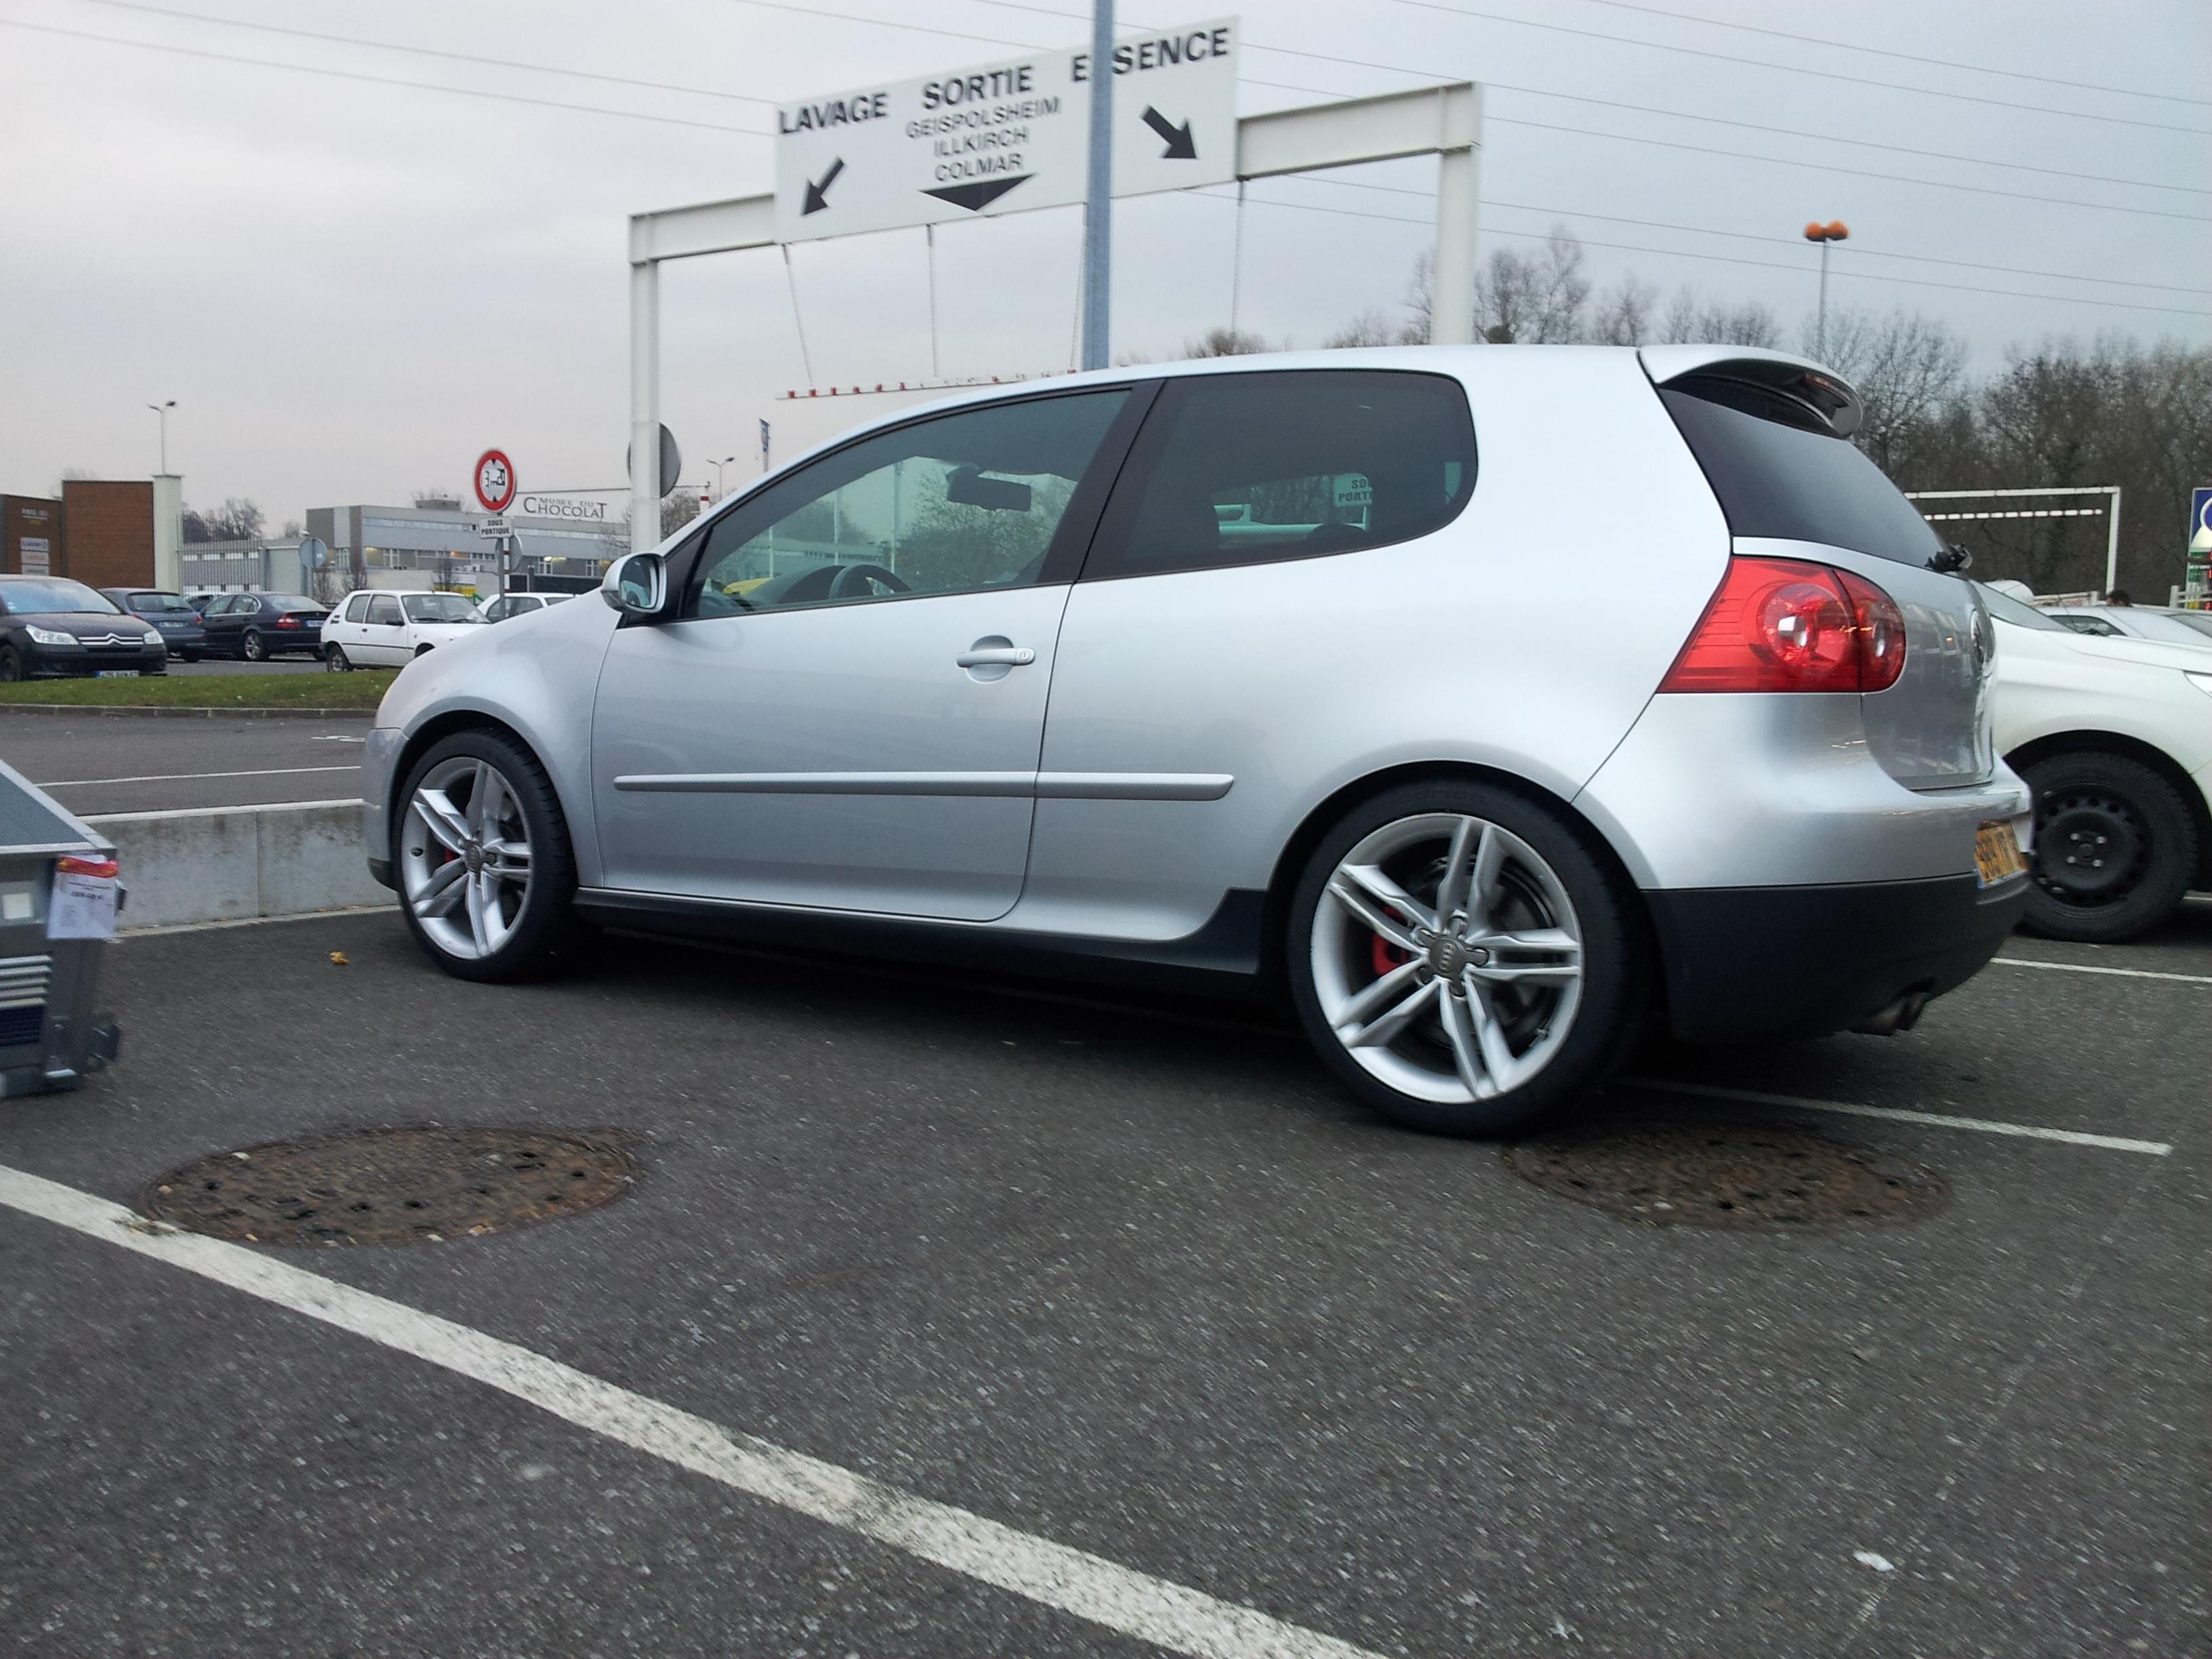 vw golf mk5 golf 5 gti autres v a g forum. Black Bedroom Furniture Sets. Home Design Ideas